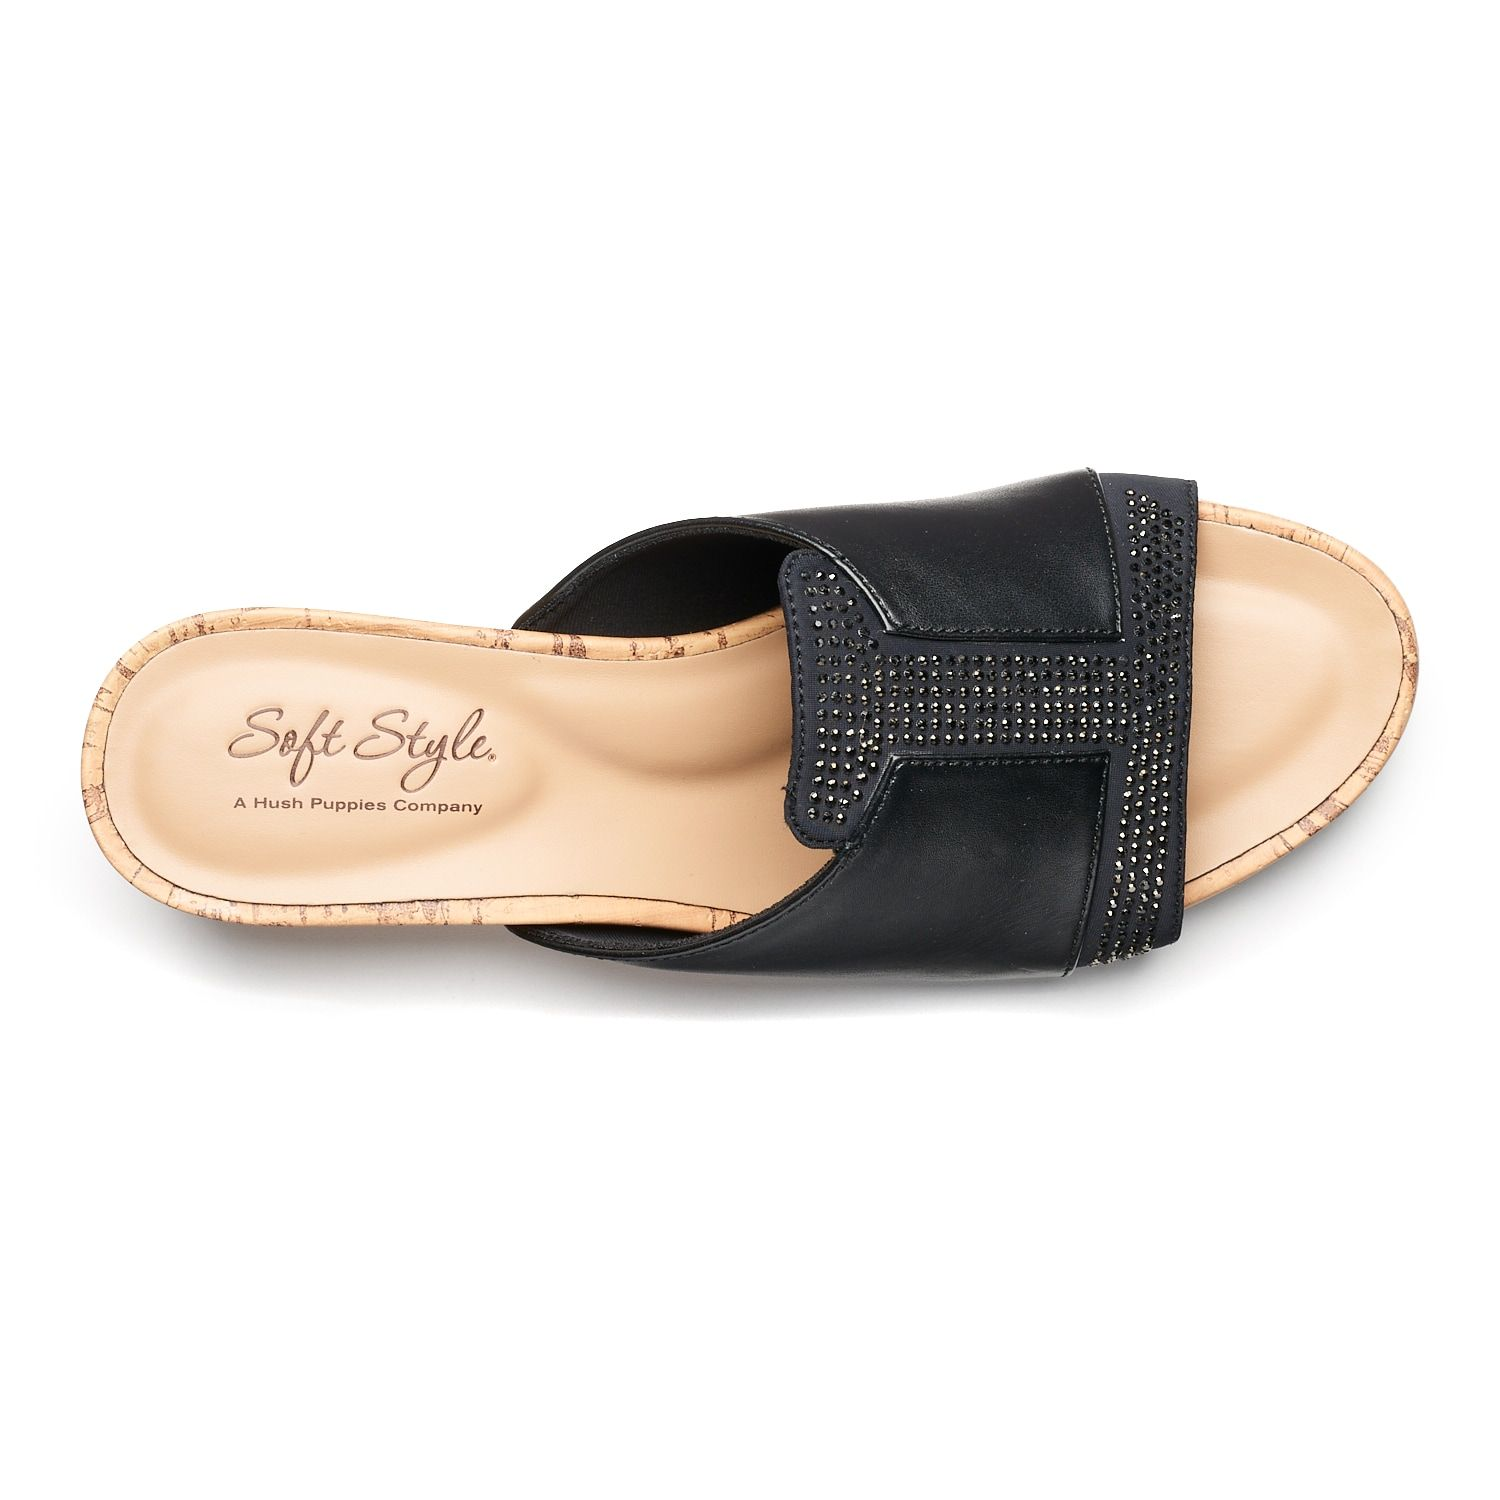 Soft Style By Hush Puppies Omber Women S Sandals Hush Style Soft Puppies Womens Sandals Hush Puppies Sandals